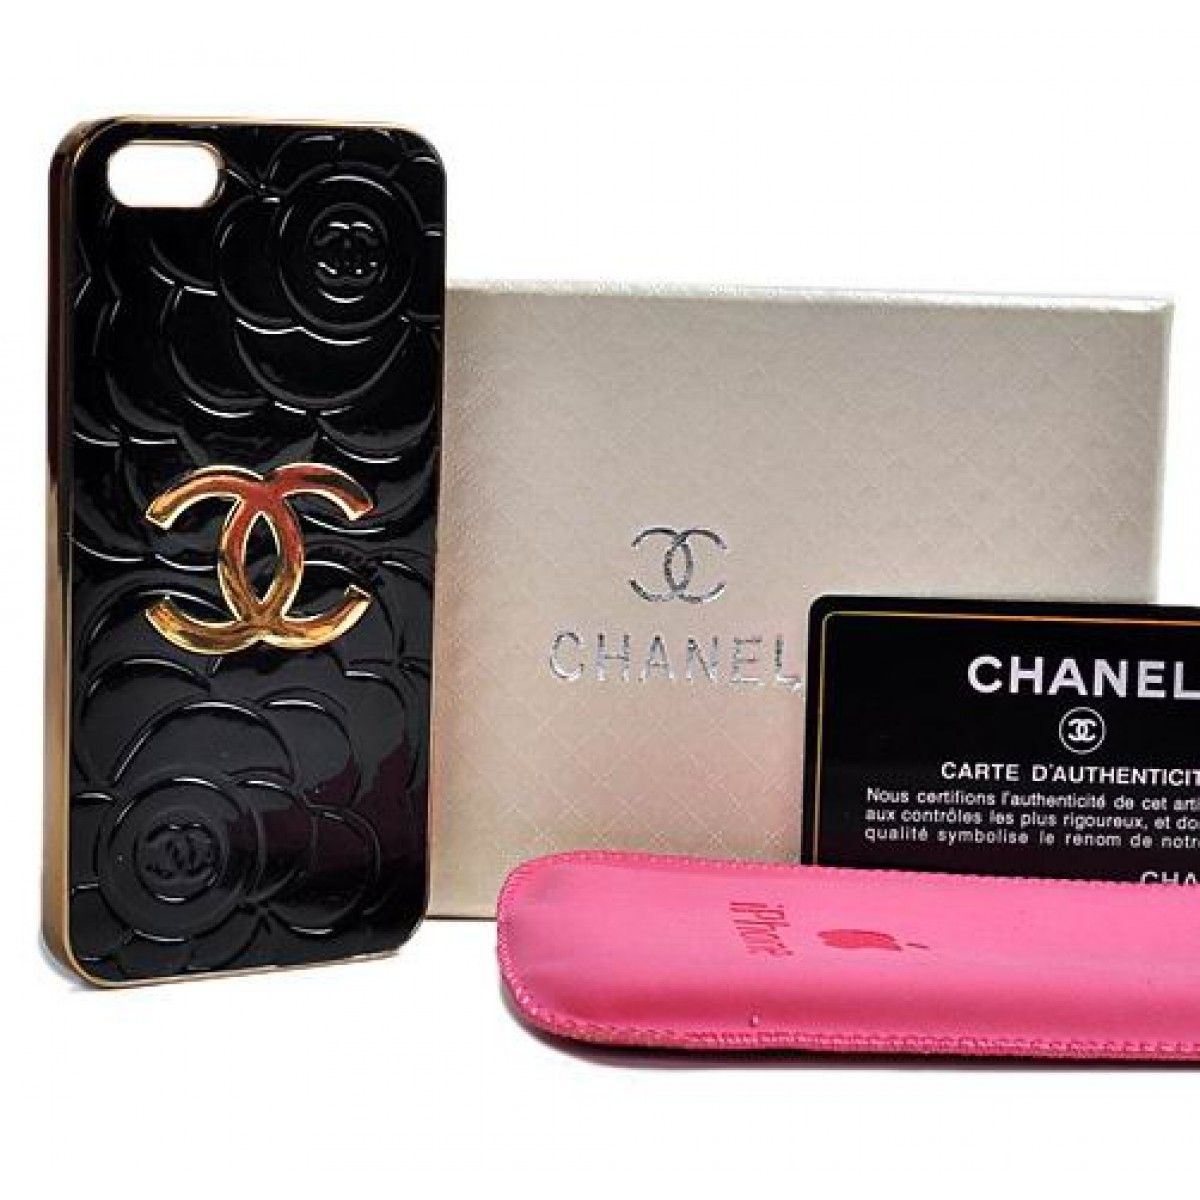 Coque Chanel iPhone 5S,Coques Rose pour iPhone 5S -Noir | Chanel ...